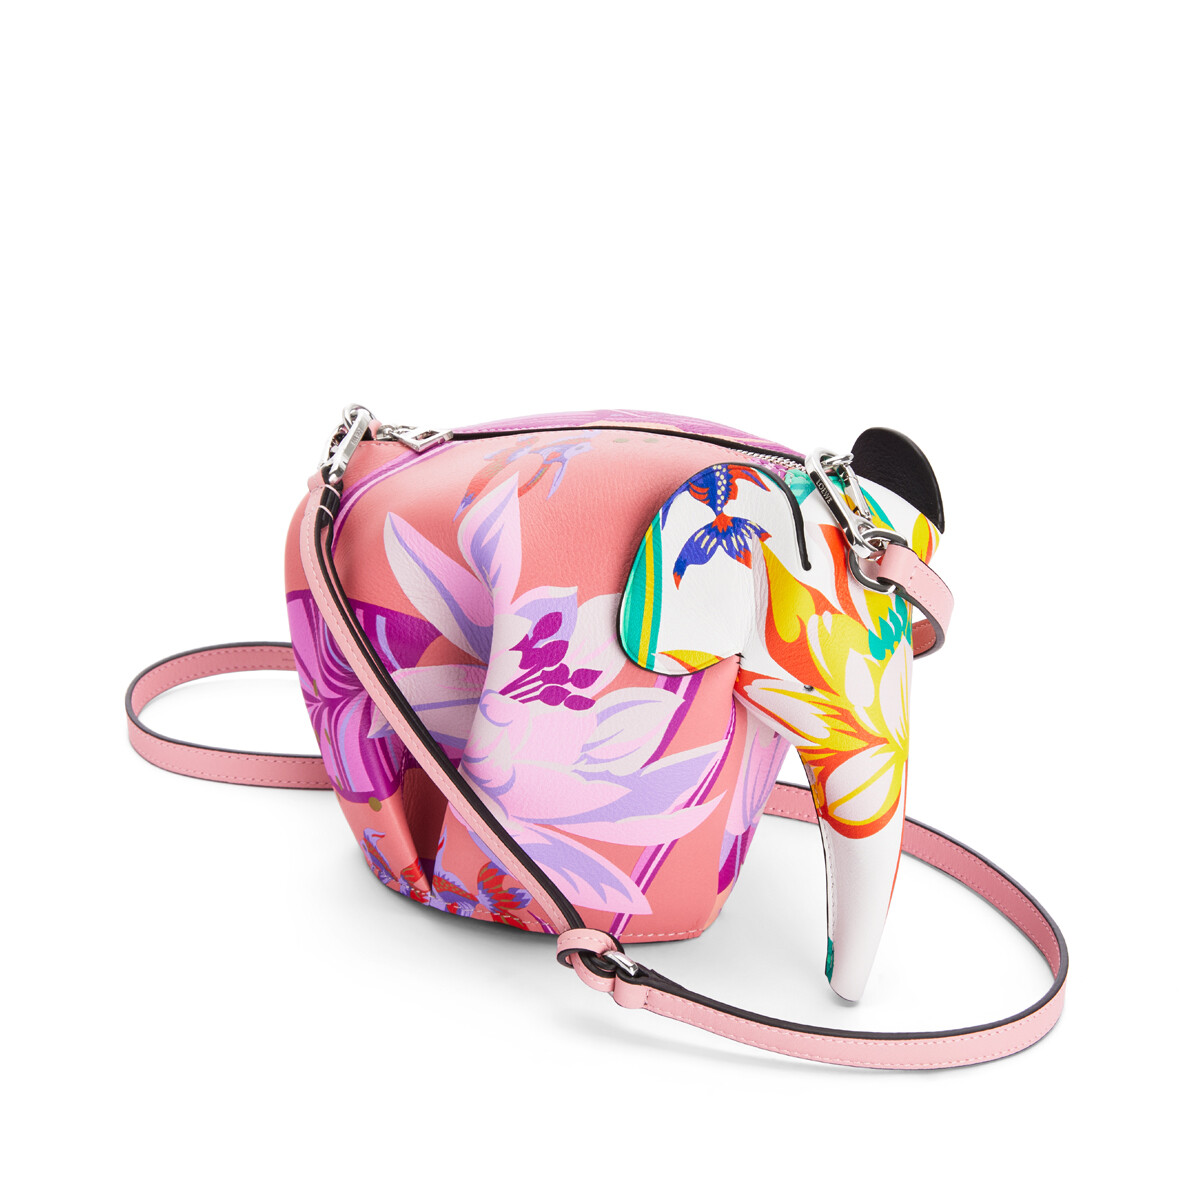 LOEWE Mini Elephant Bag In Waterlily Classic Calfskin Pink/White front